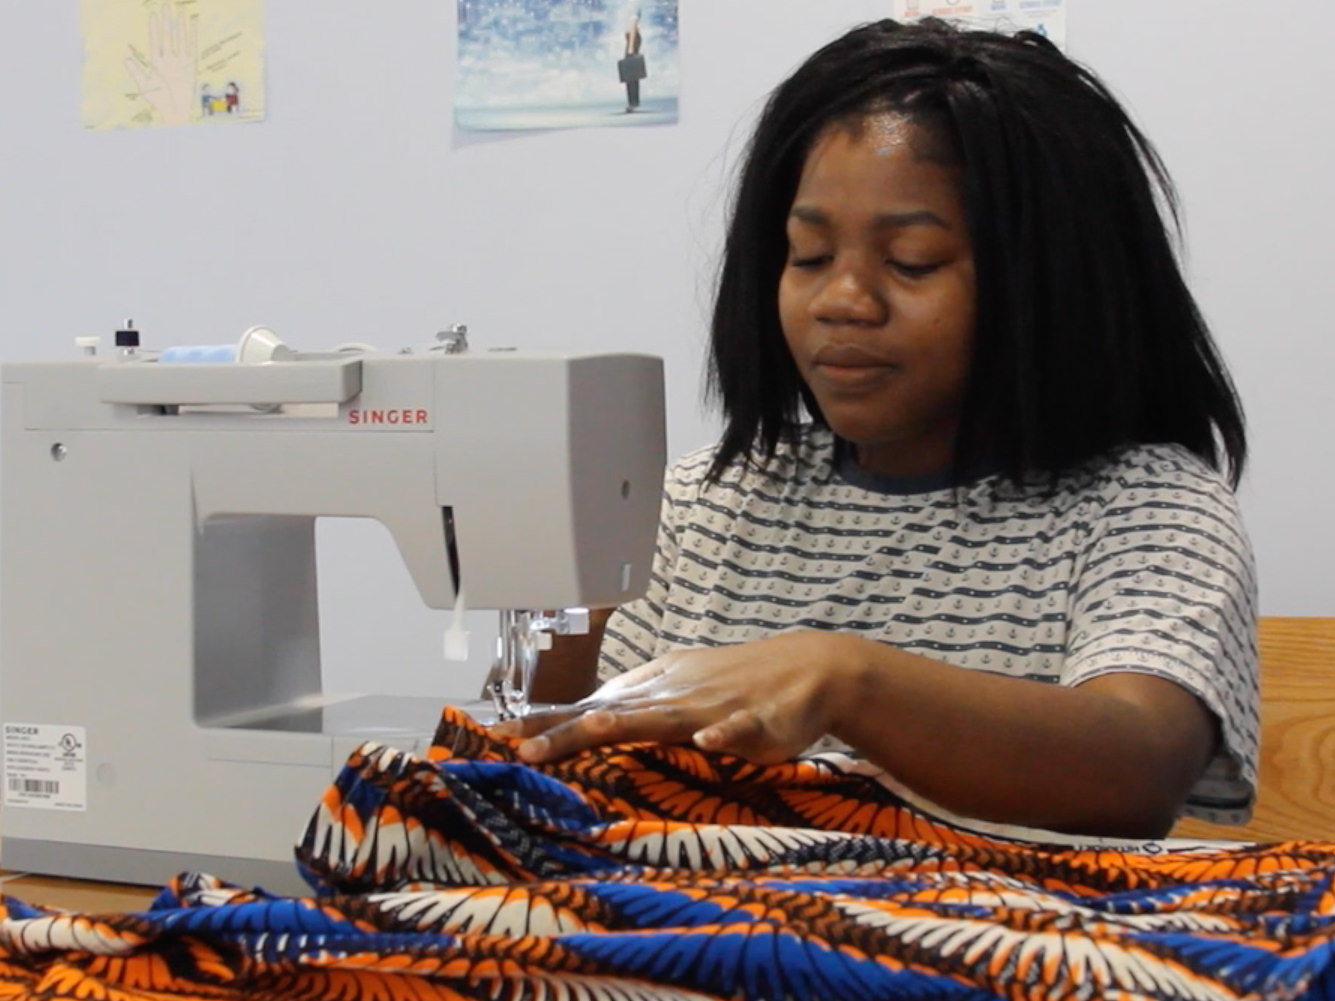 student creates clothing line with sewing machine